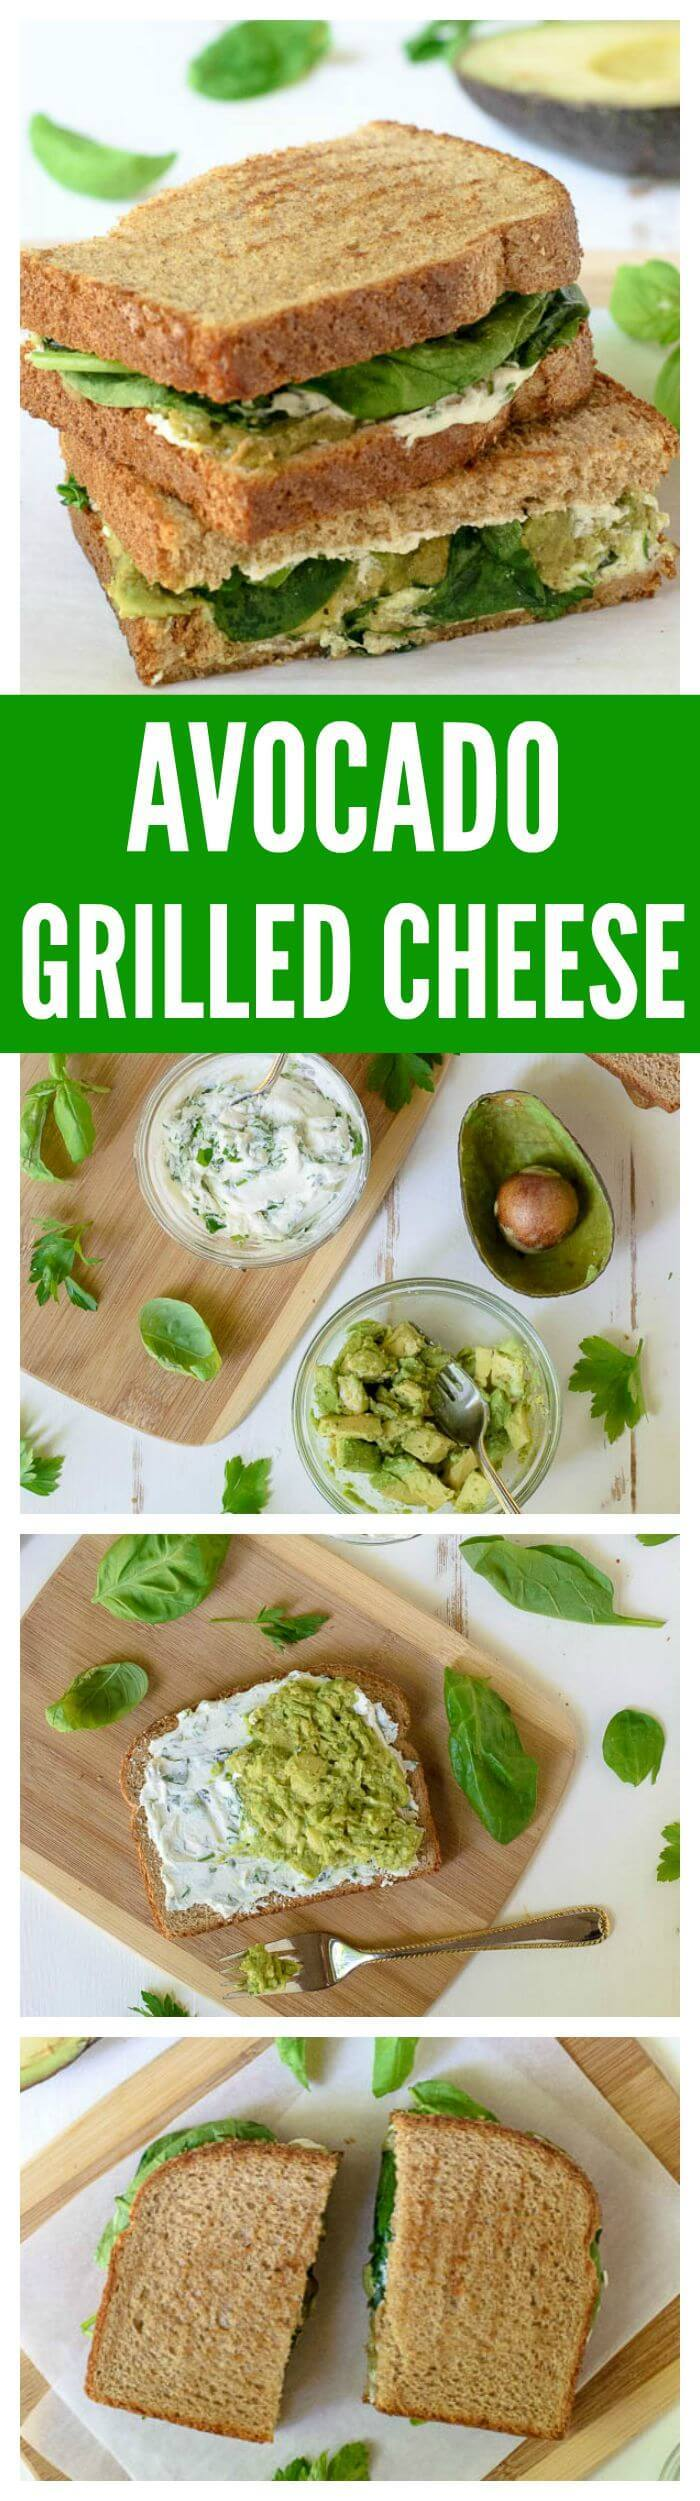 ... grilled avocado grilled two cheese avocado sammie recipe dishmaps